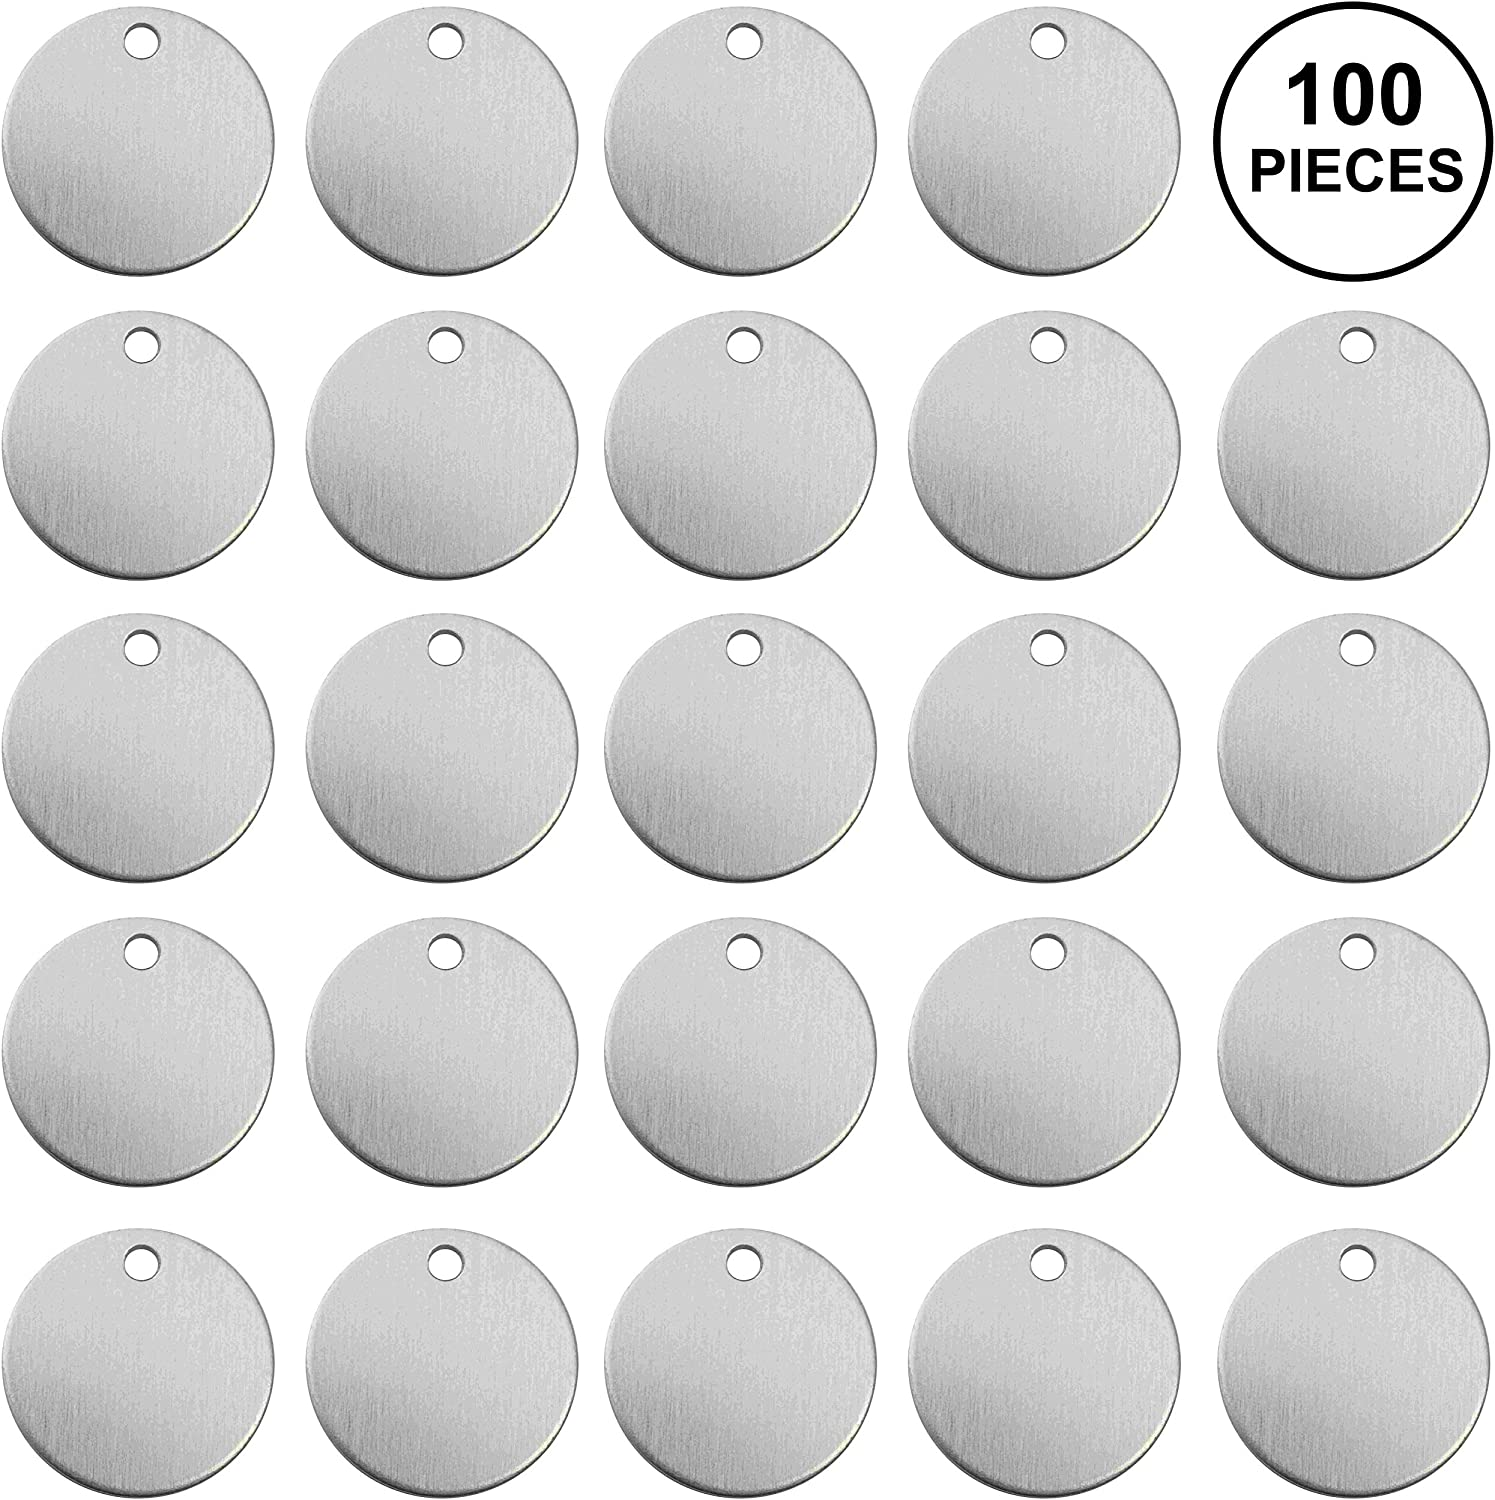 "100 Pieces Aluminum Stamping Blanks by Craftbox. 1-Inch Round with Hole,12-Gauge (0.08"" Thick). Soft Temper, Deeper Impressions. Includes Cute Plastic Storage Case 91VVyOa84LL"